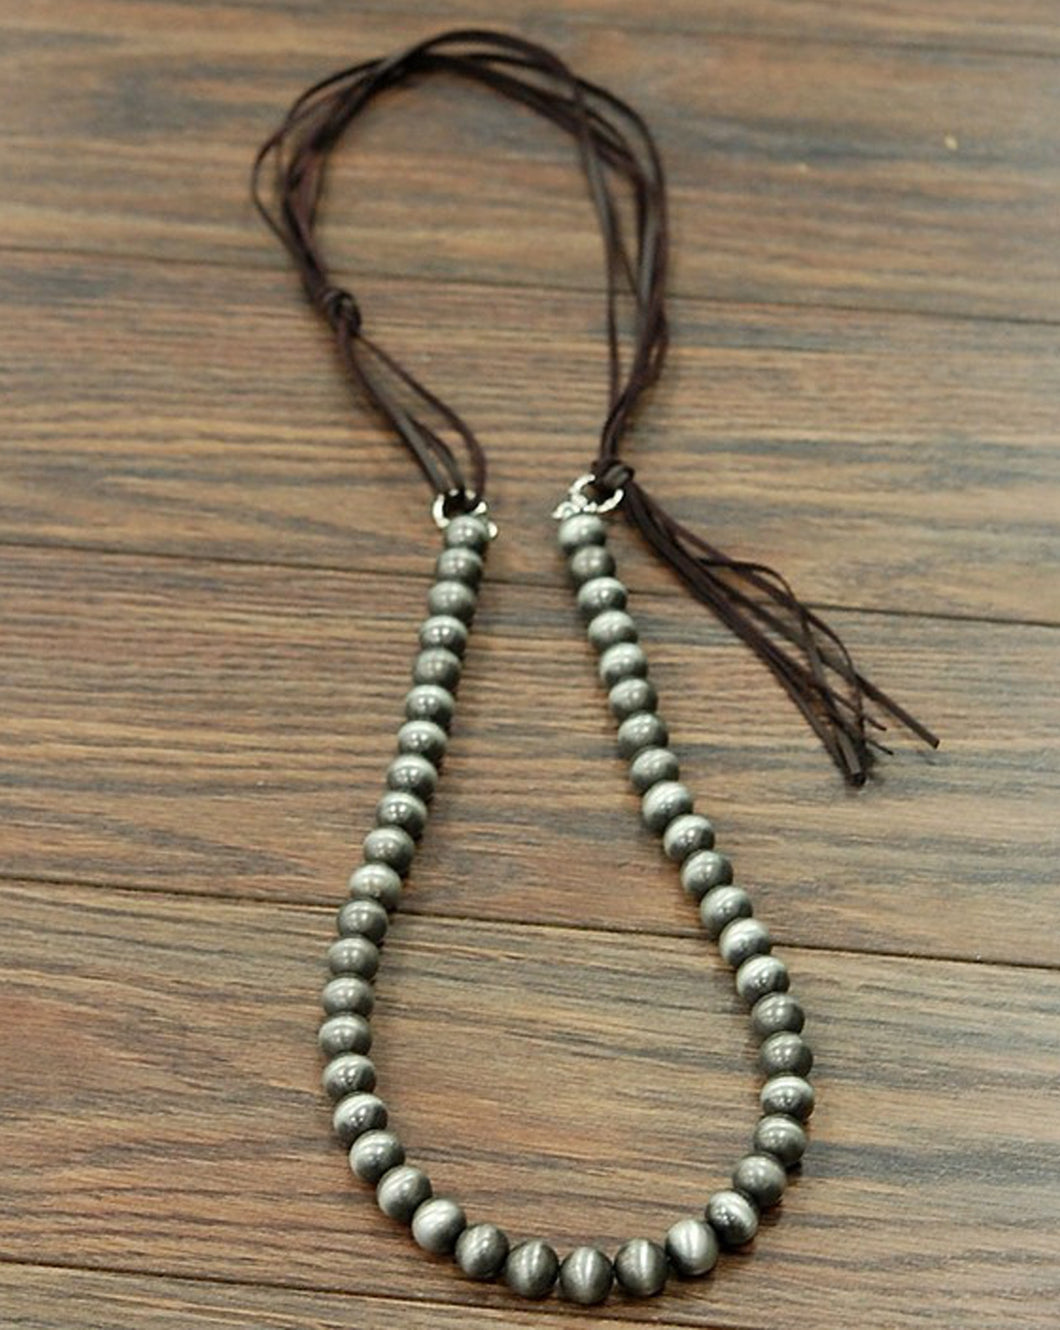 THE TRAVELIN' KIND NECKLACE